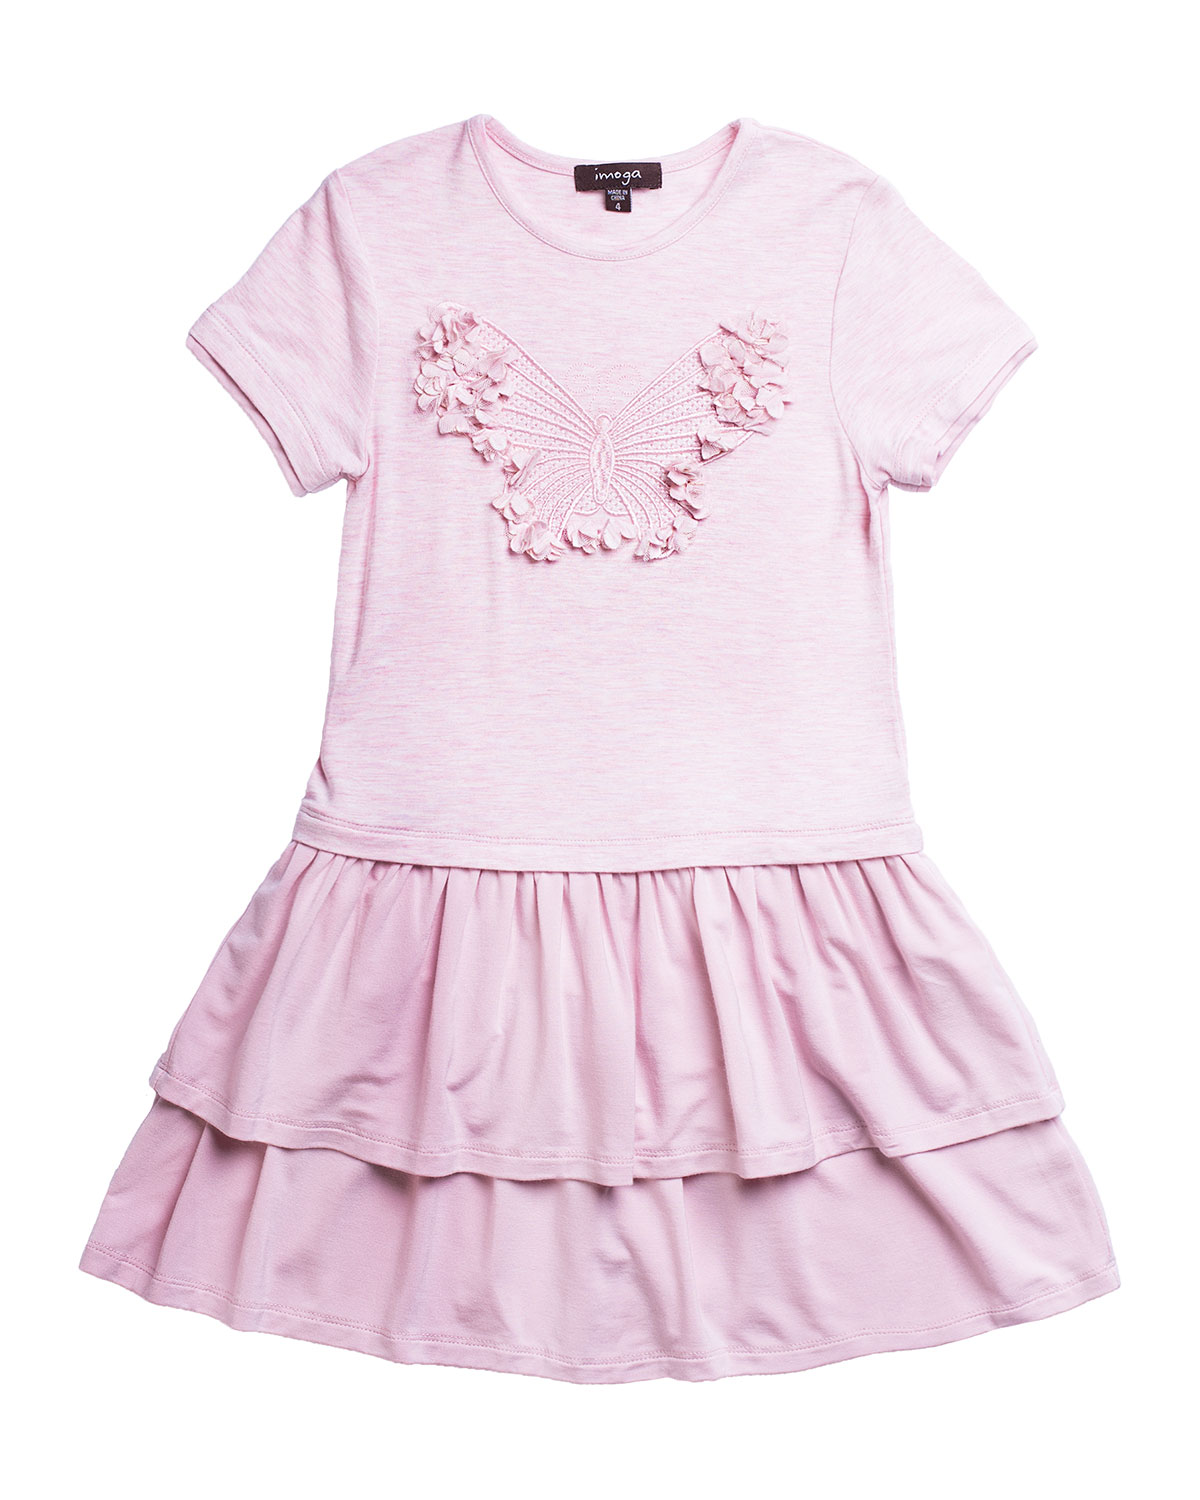 Imoga GIRL'S TIERED BUTTERFLY FIT-AND-FLARE DRESS